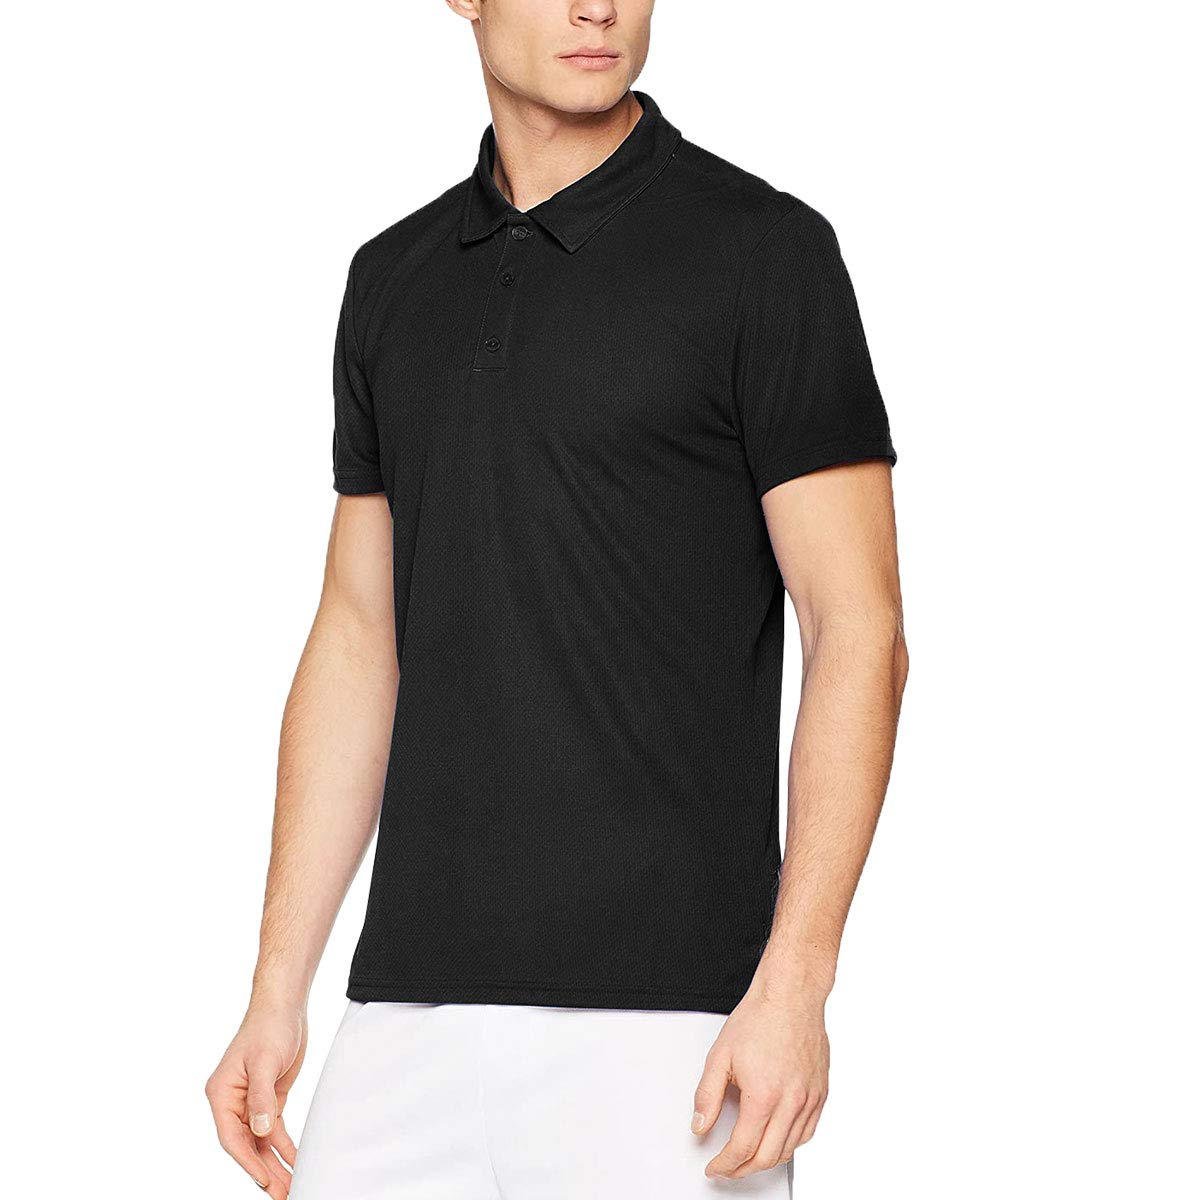 Mens Golf Polo Shirts, Quick Dry Classic Fit Short Sleeve Performance Athletic T-Shirts for Workout